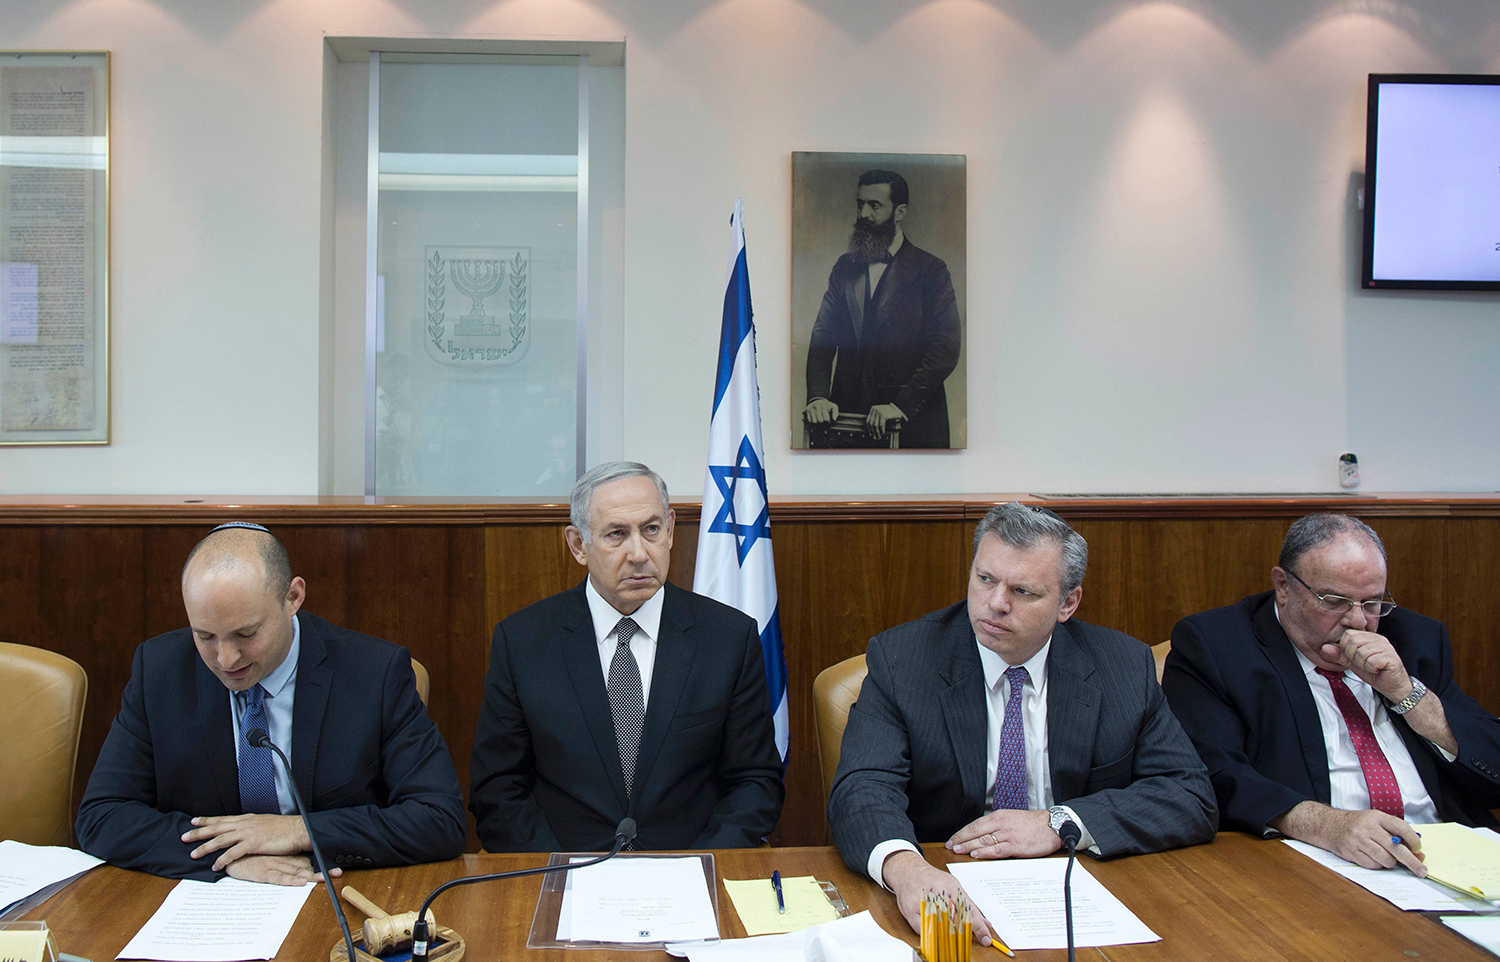 Israeli Prime Minister Benjamin Netanyahu listens to Bennett, then education minister, during the weekly cabinet meeting in Jerusalem on Aug. 30, 2016. ABIR SULTAN/AFP via Getty Images